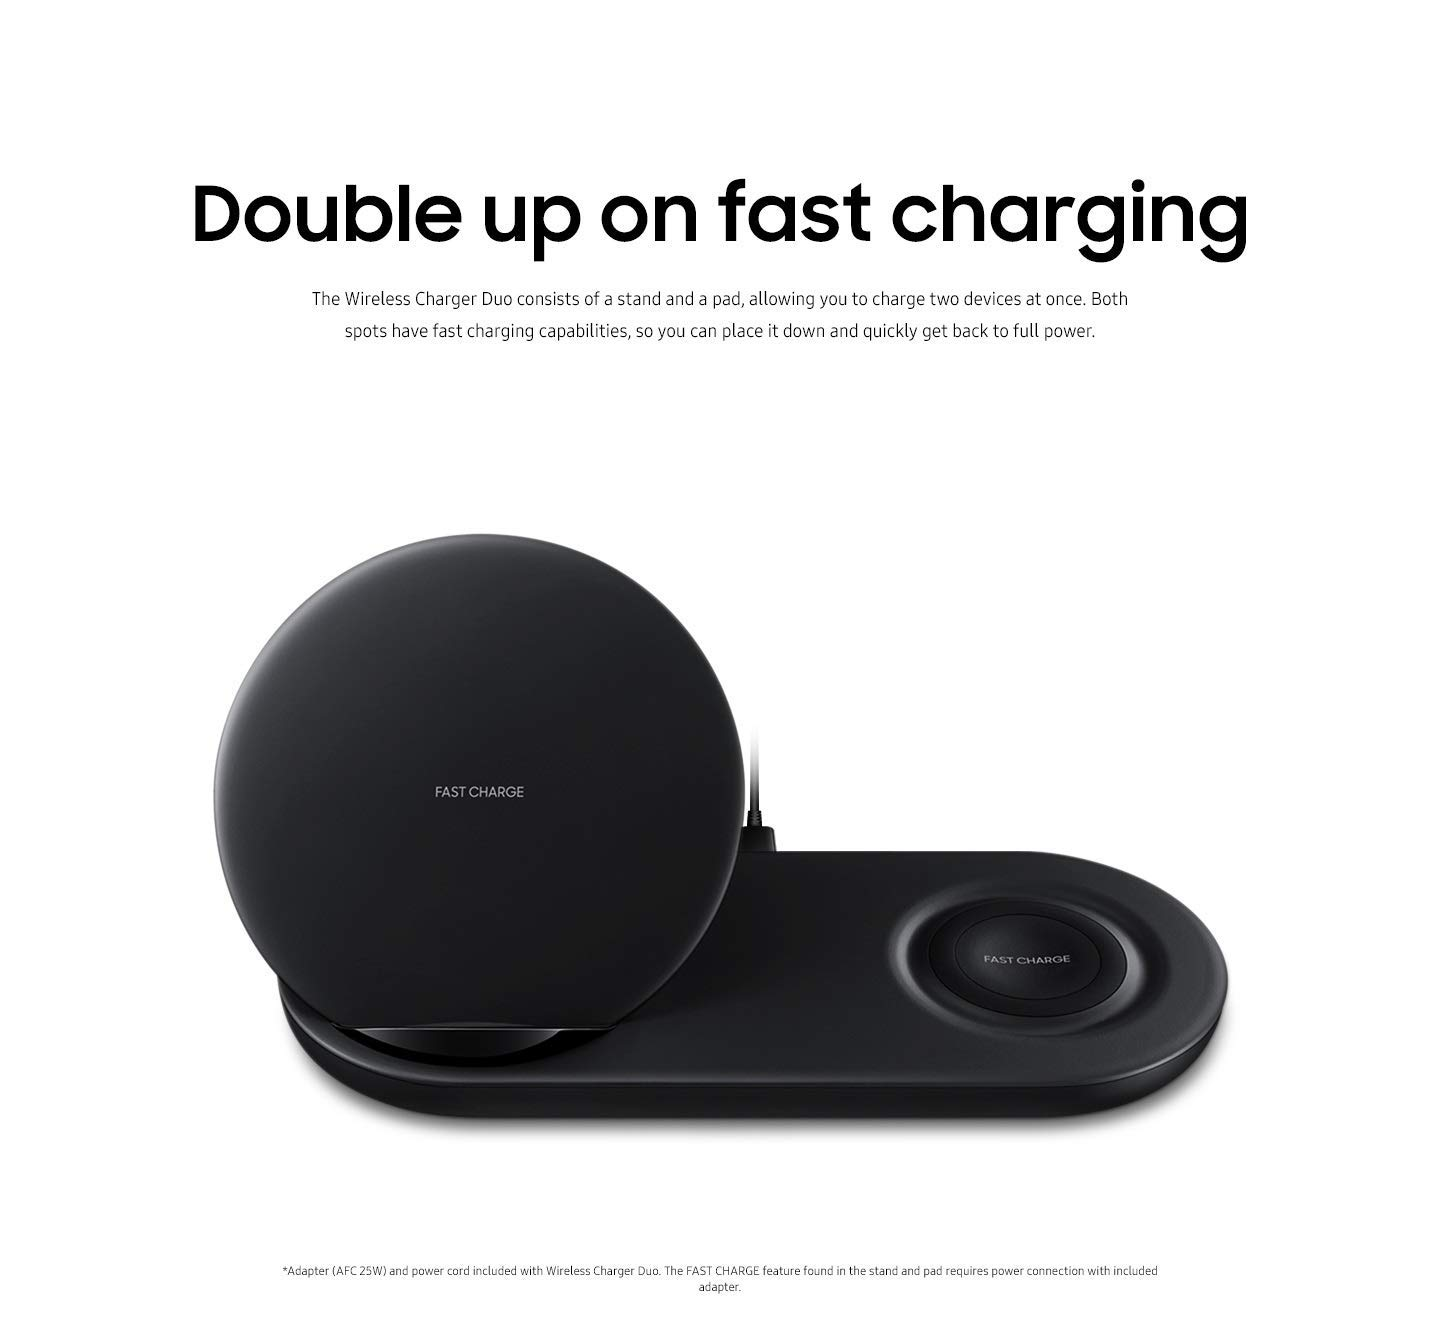 Charging Stations 7.5W Renewed Samsung Wireless Charger Duo EP-N6100 Black  Cell Phones & Accessories